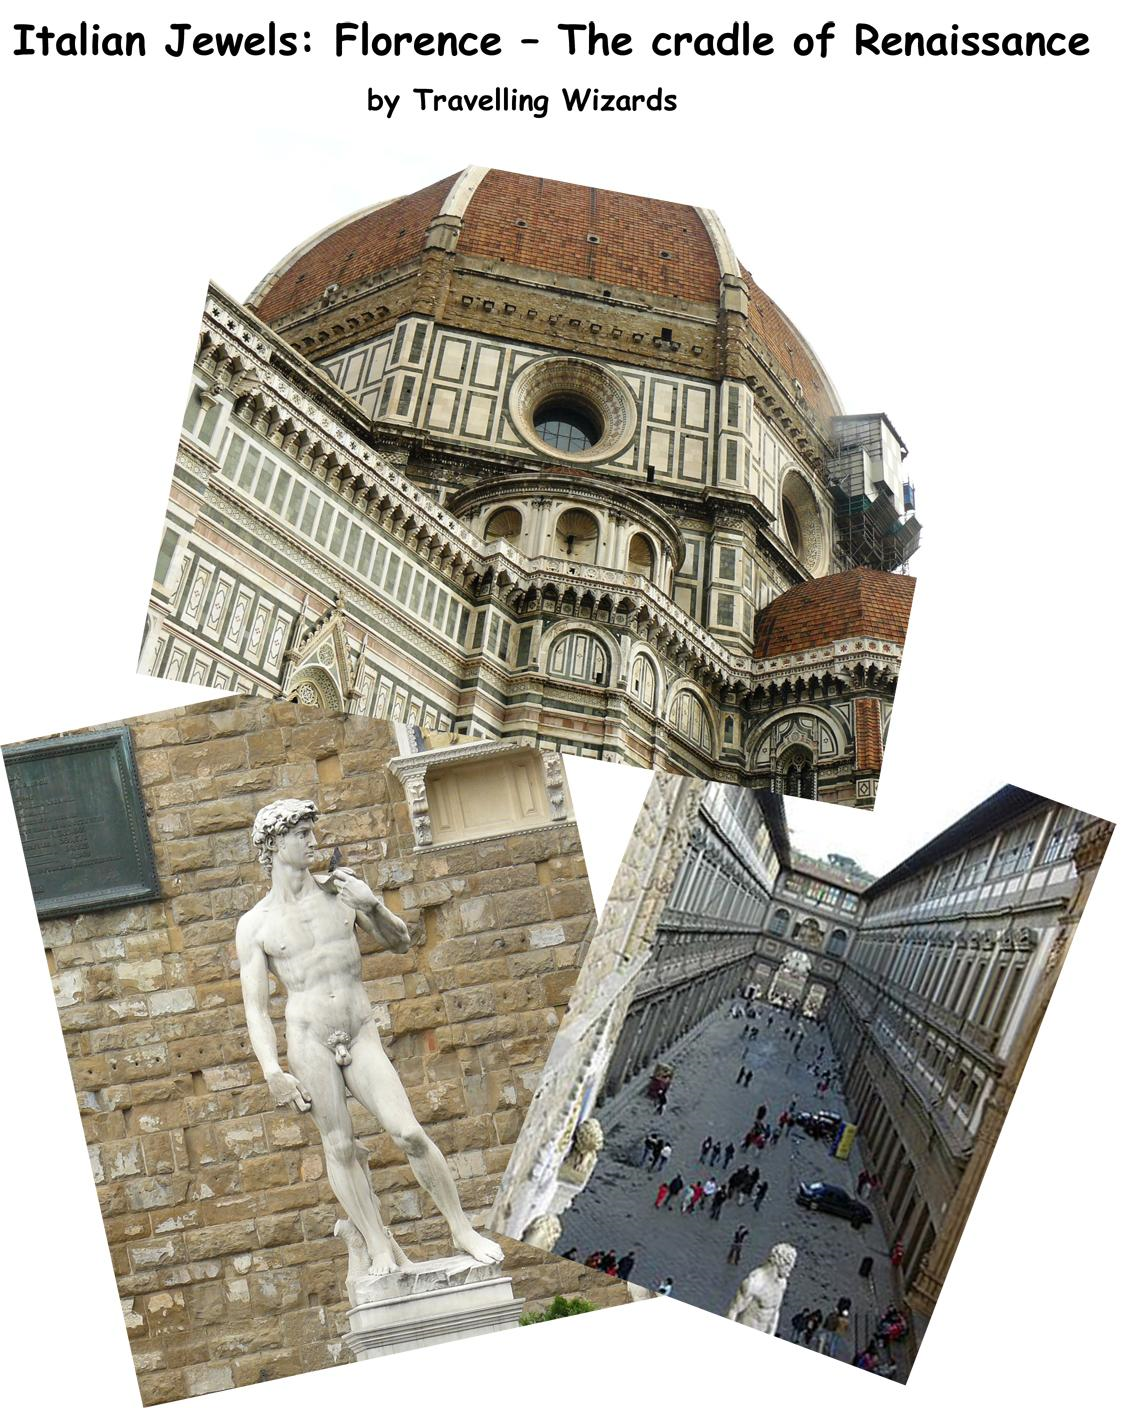 Italian Jewels: Florence - The cradle of Renaissance